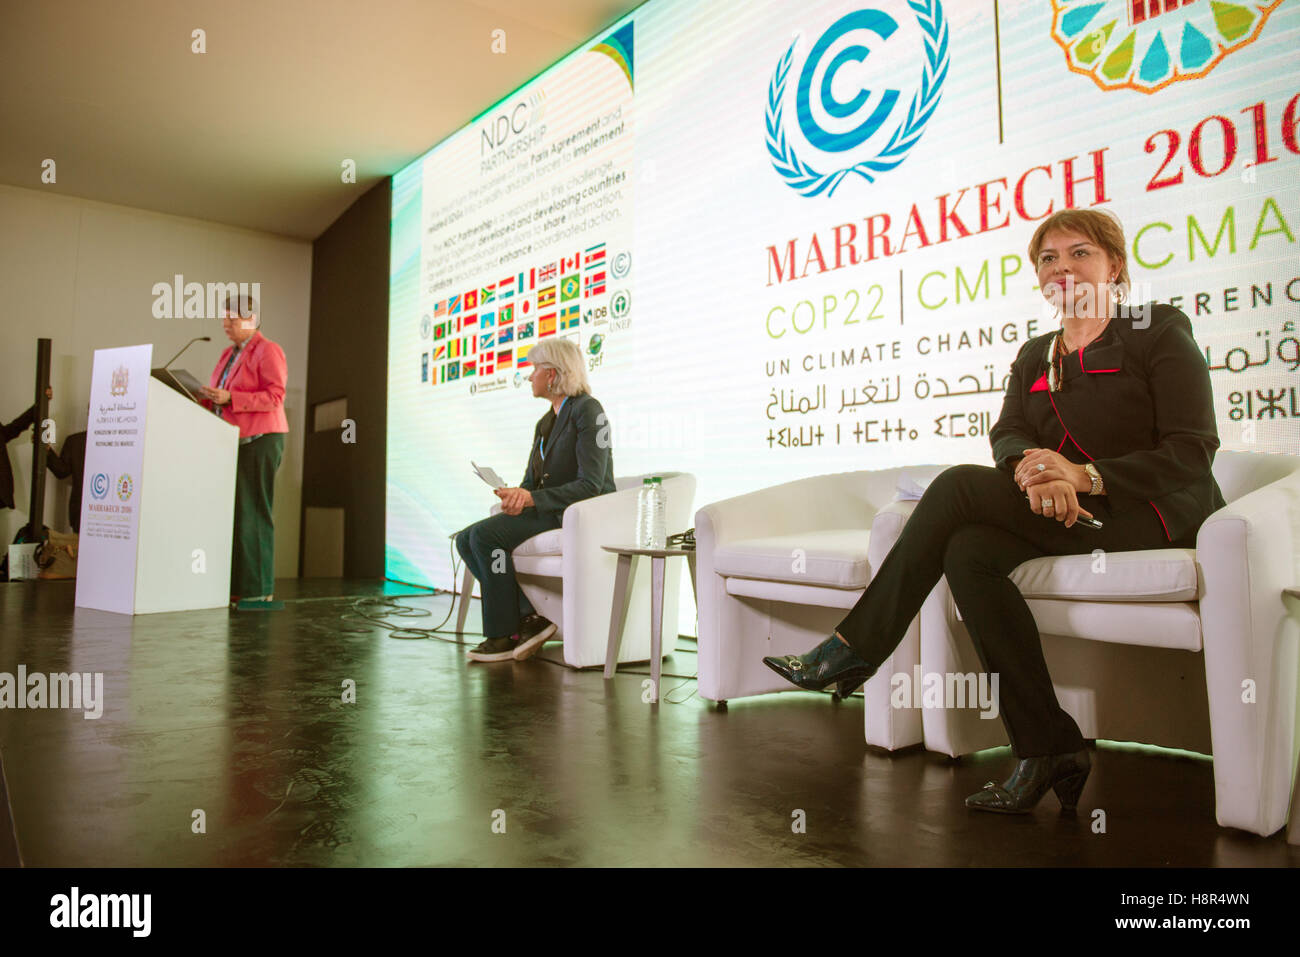 Marrakech, Morocco. 15th Nov, 2016. The German Federal Minister of the Environment Barbara Hendricks, the Moroccan Stock Photo